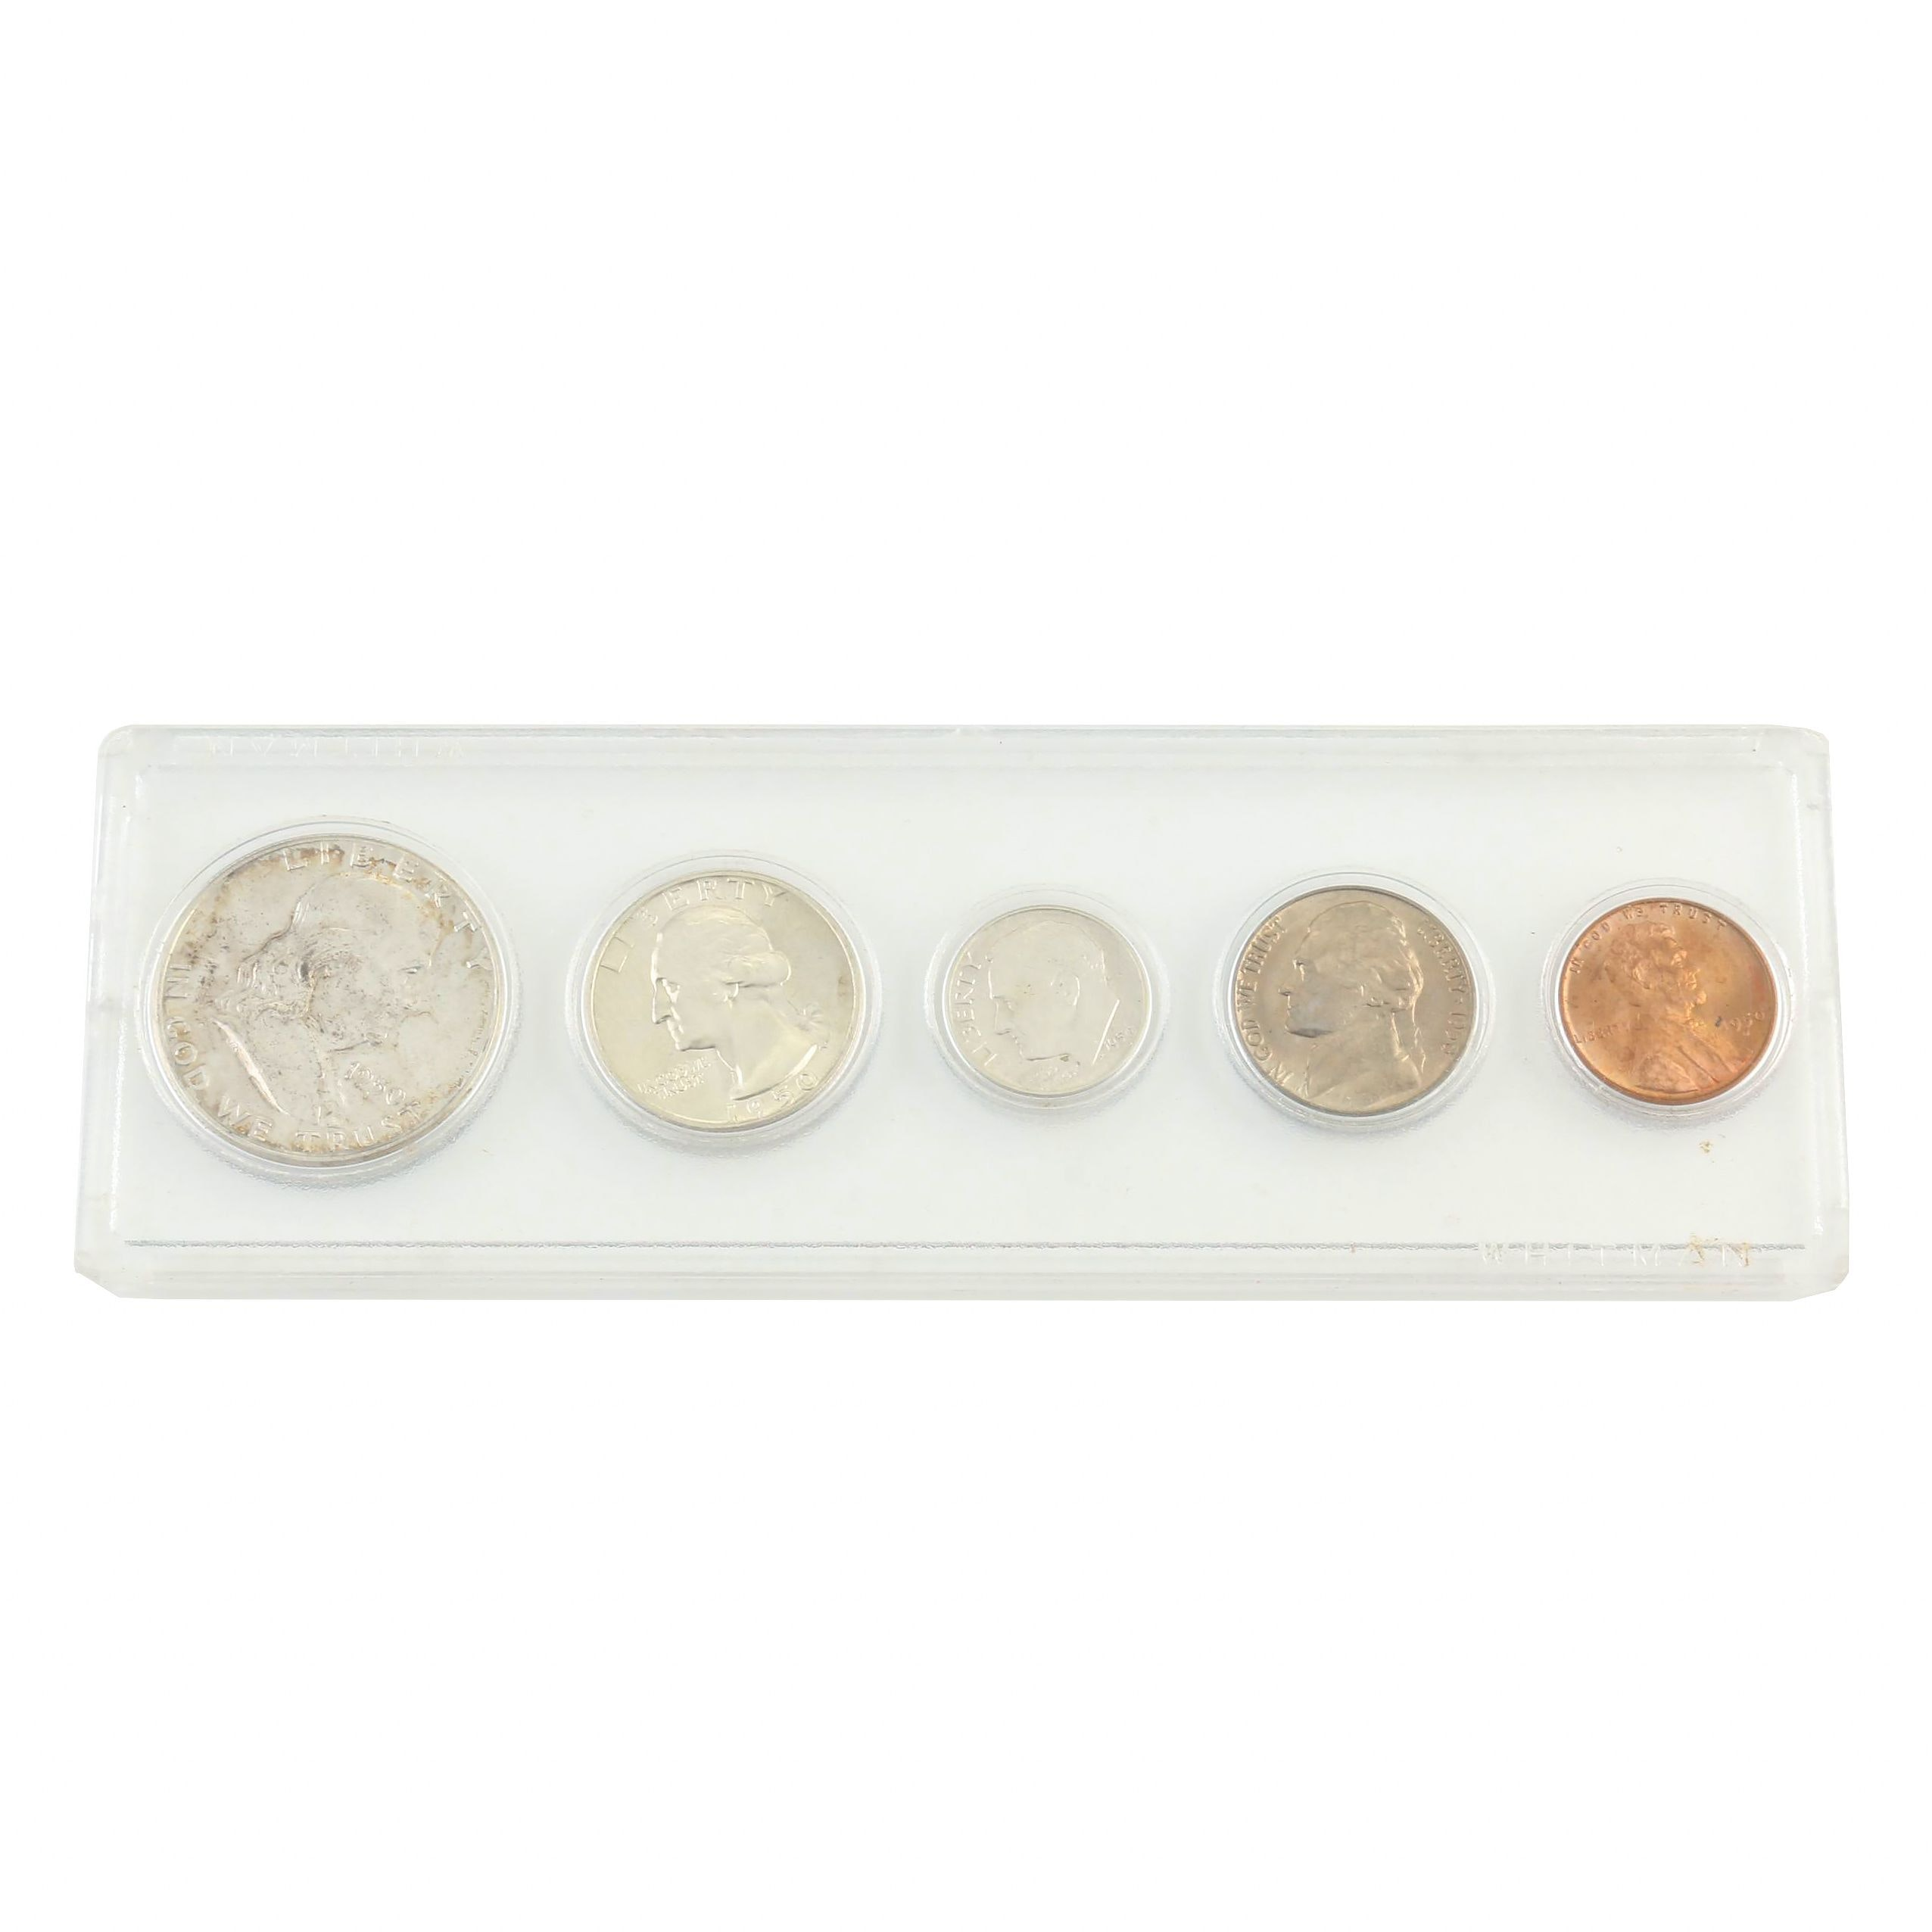 1950 U.S. Uncirculated Type Coin Set